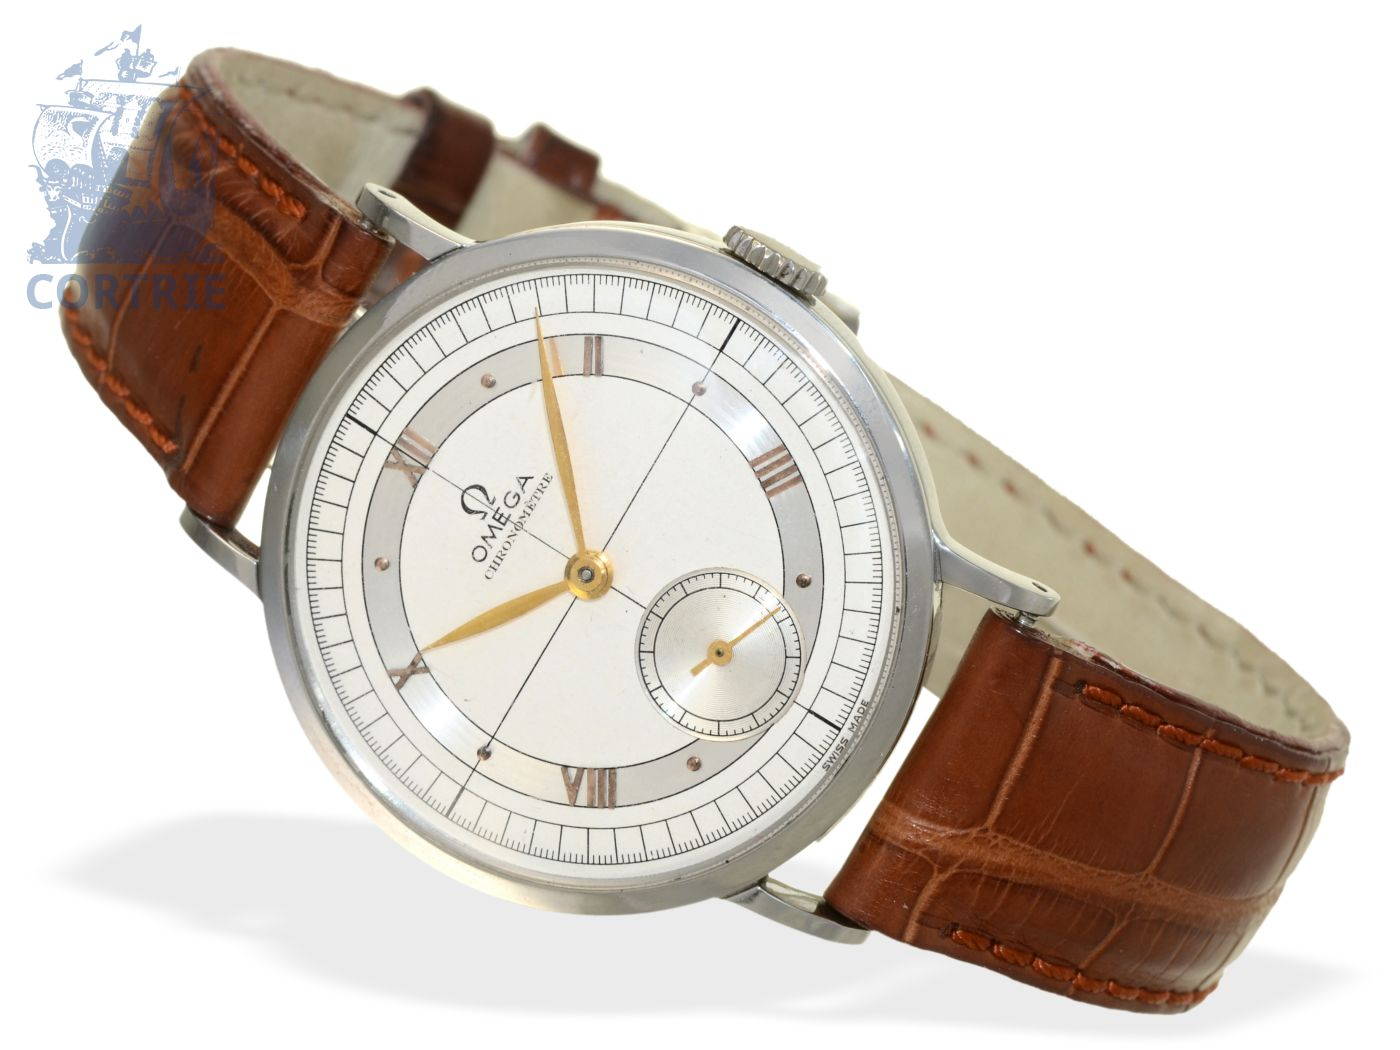 Wristwatch: very rare and big Omega chronometer, stainless steel, reference 2366, from 1946-